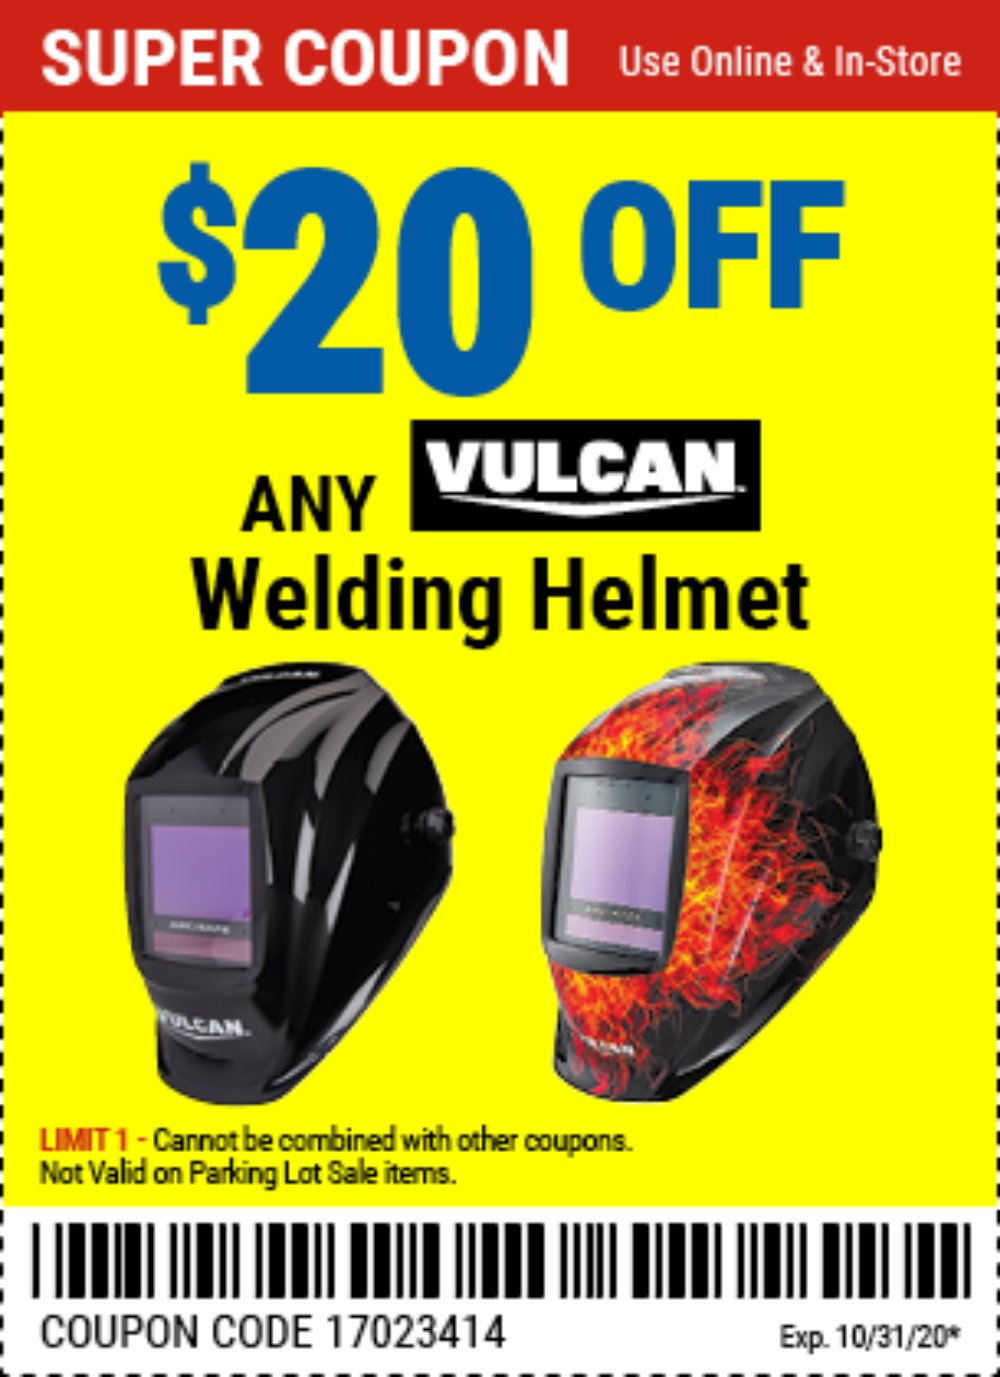 Harbor Freight Coupon, HF Coupons - $20 off Any Vulcan Helmet